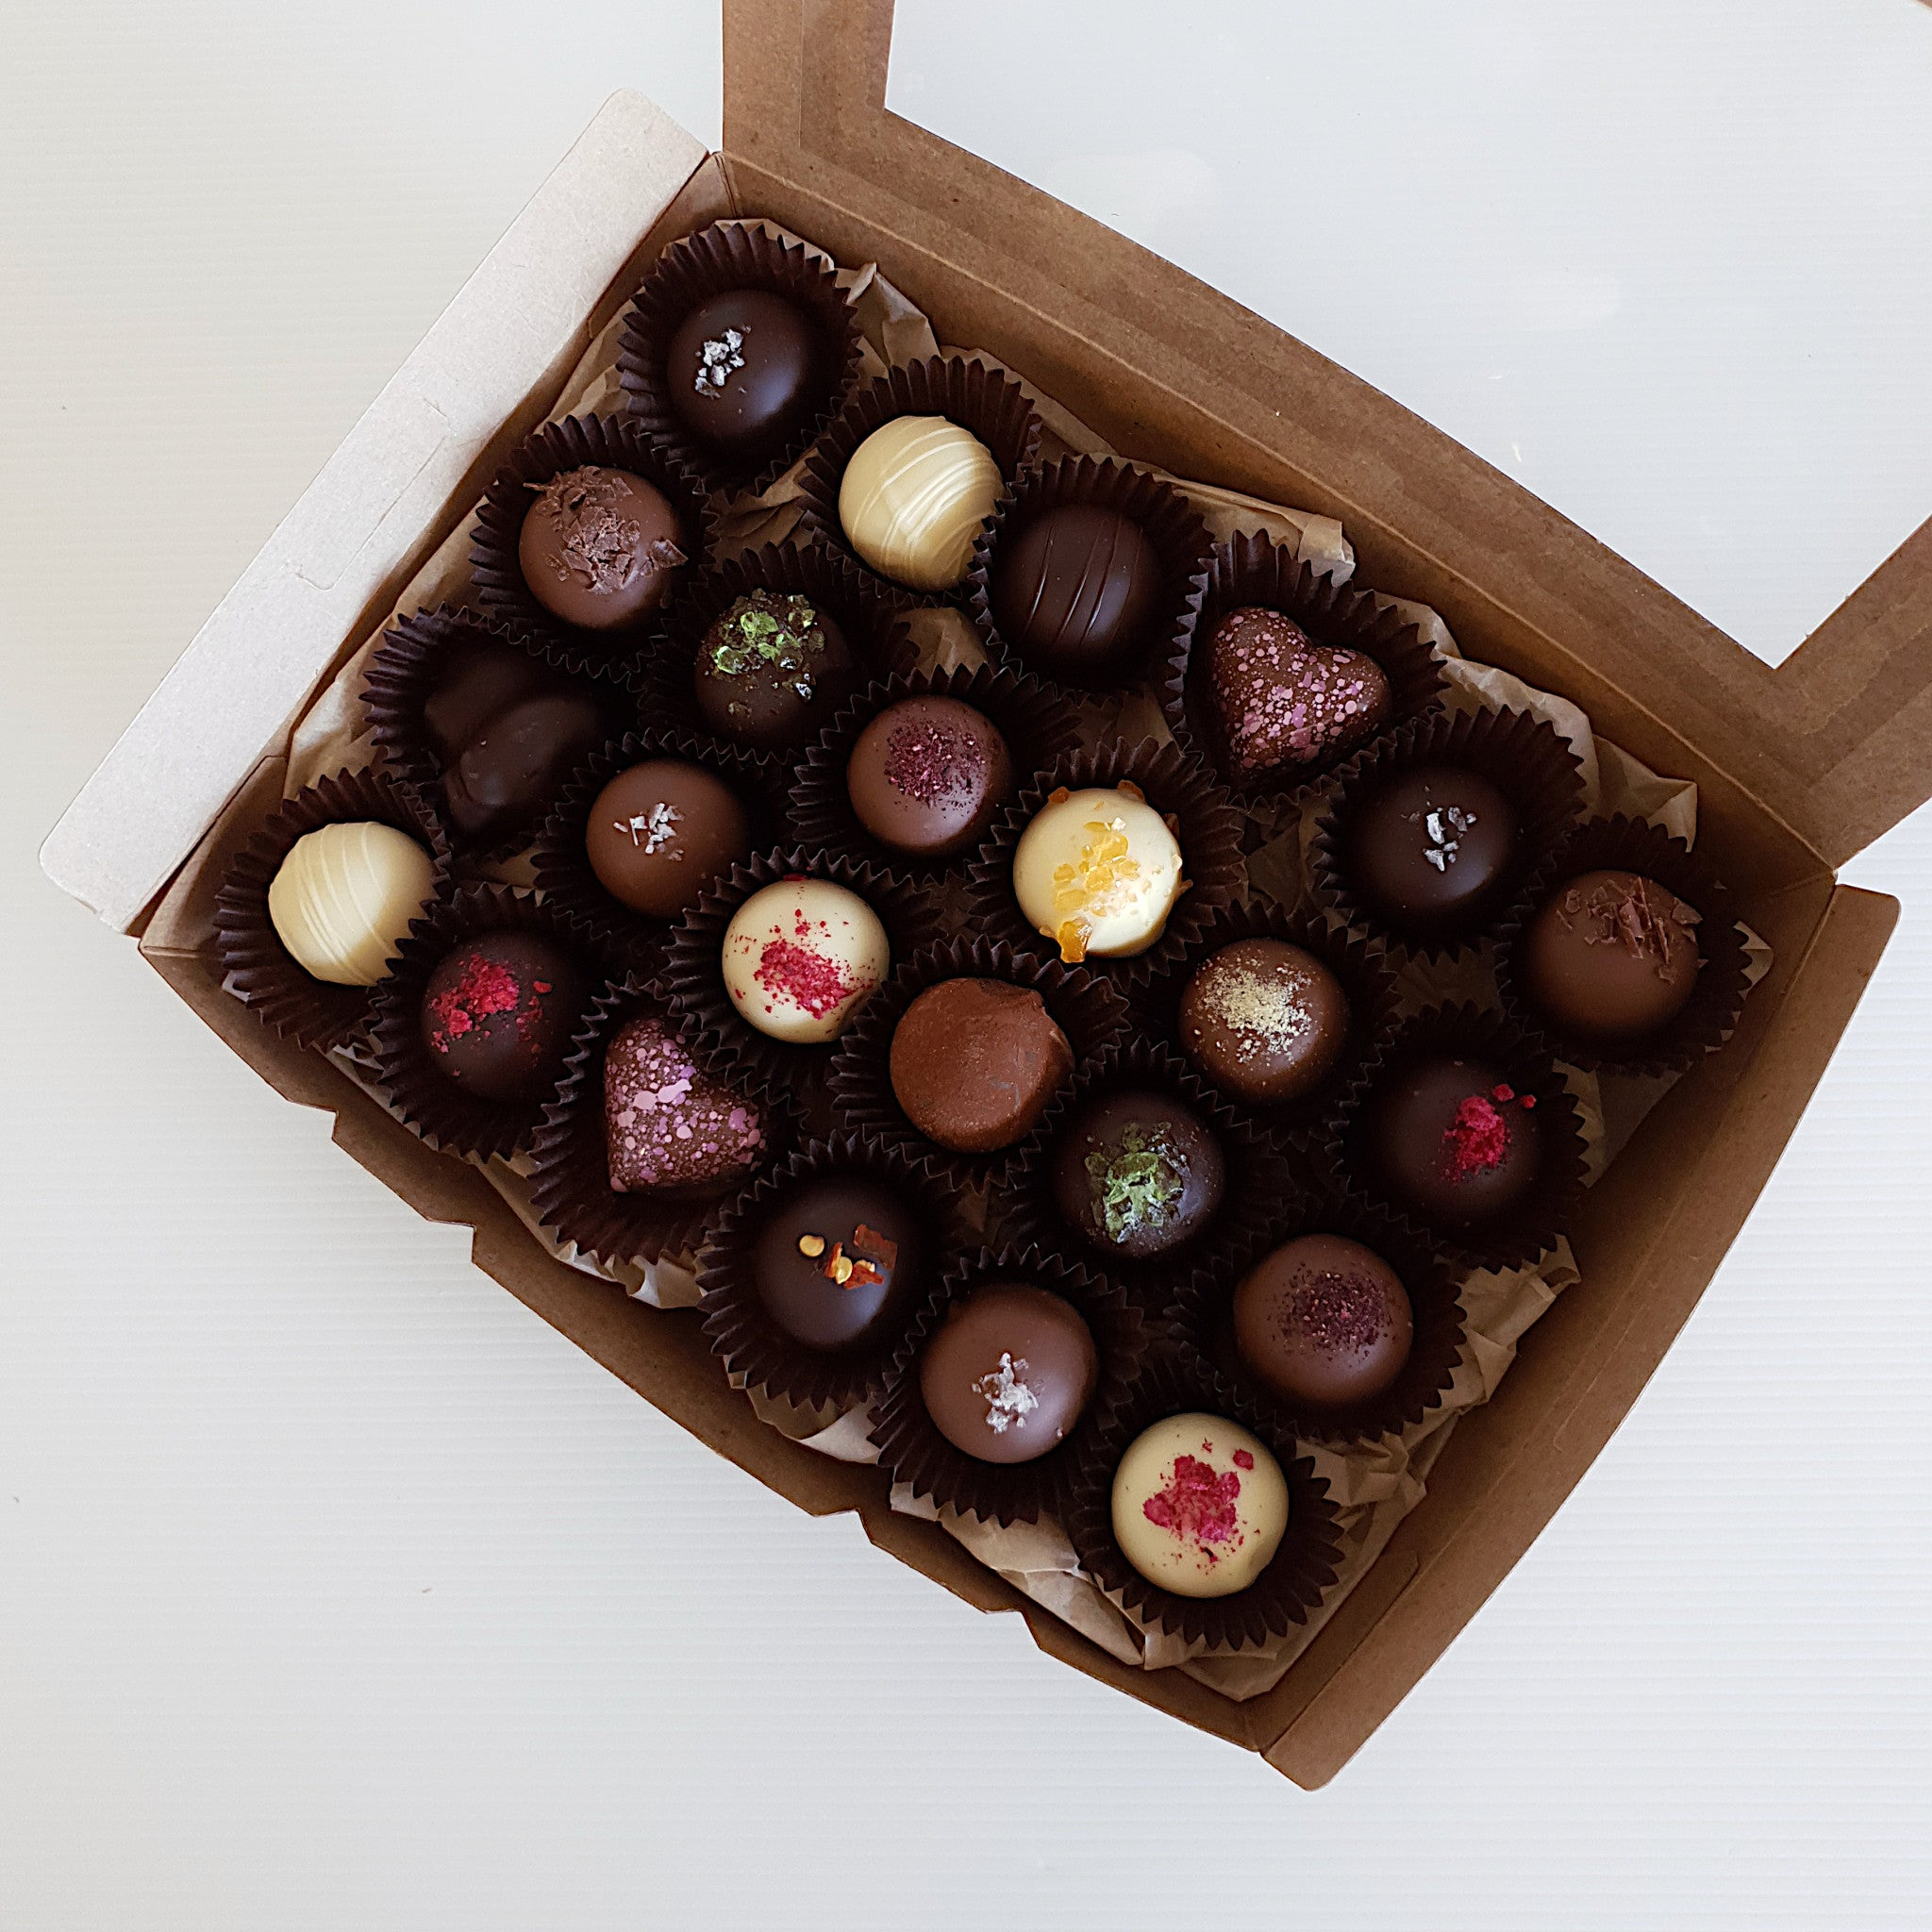 Truffle gift box. Handmade Belgian chocolate truffles in assorted flavours. Lemon, salted caramel, peppermint, lavender, raspberry, chilli lime, hibiscus, Irish cream and more. Made at Woodstock Chocolate Co in Milton, on the south coast of NSW